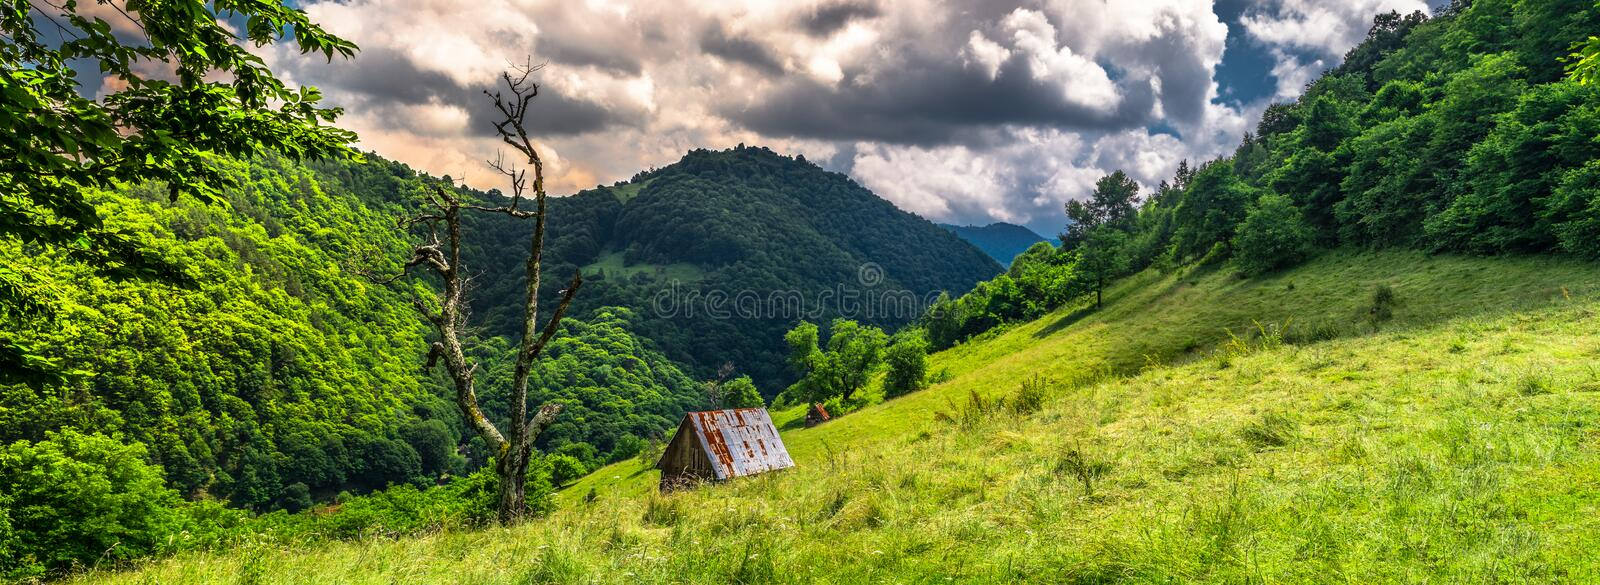 Old lonely tree and a cottage royalty free stock photo